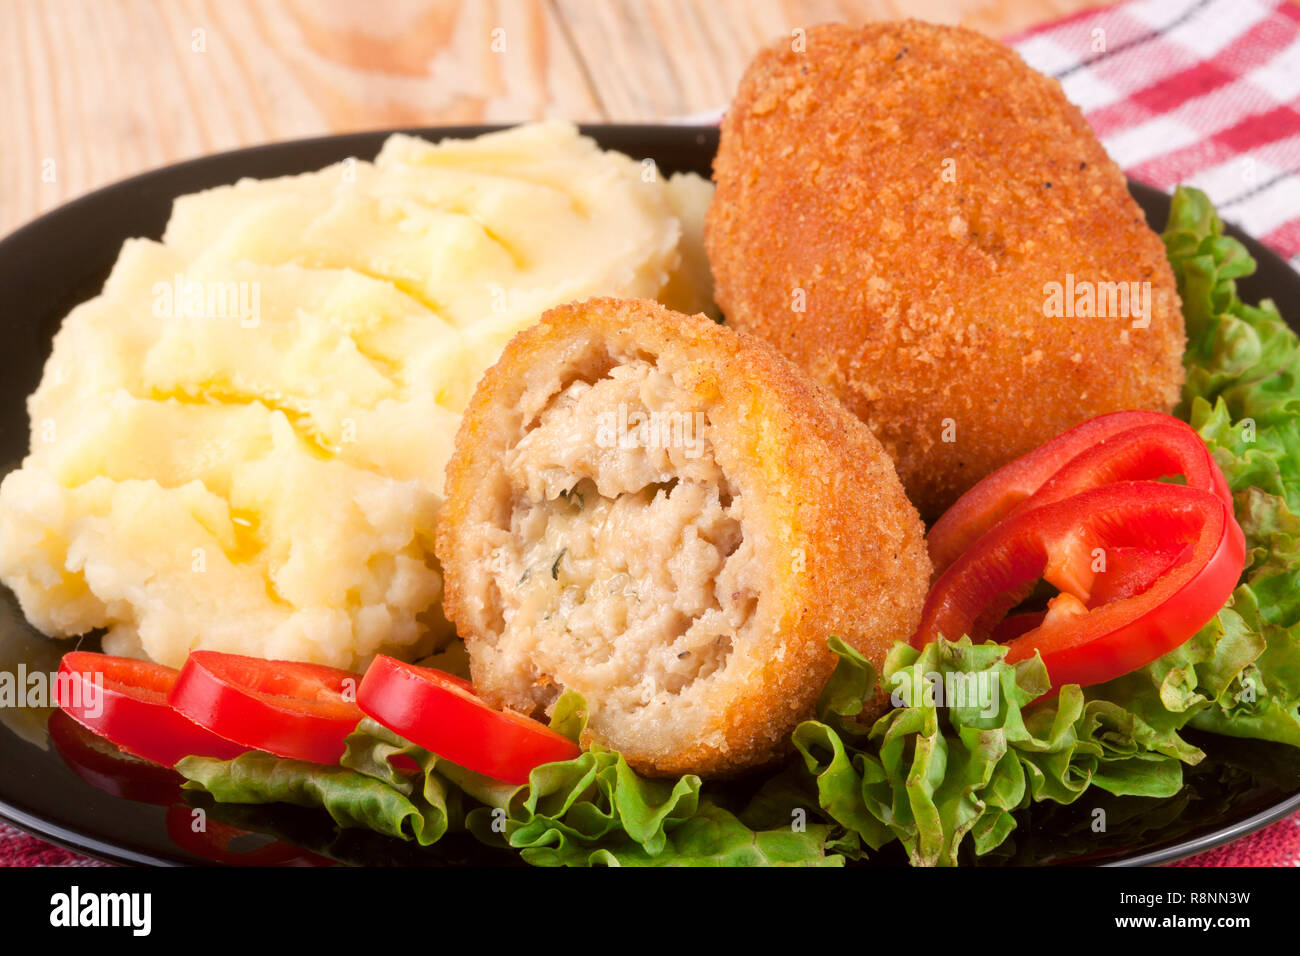 three fried breaded cutlet with mashed potatoes lettuce on a black plate and wooden background - Stock Image